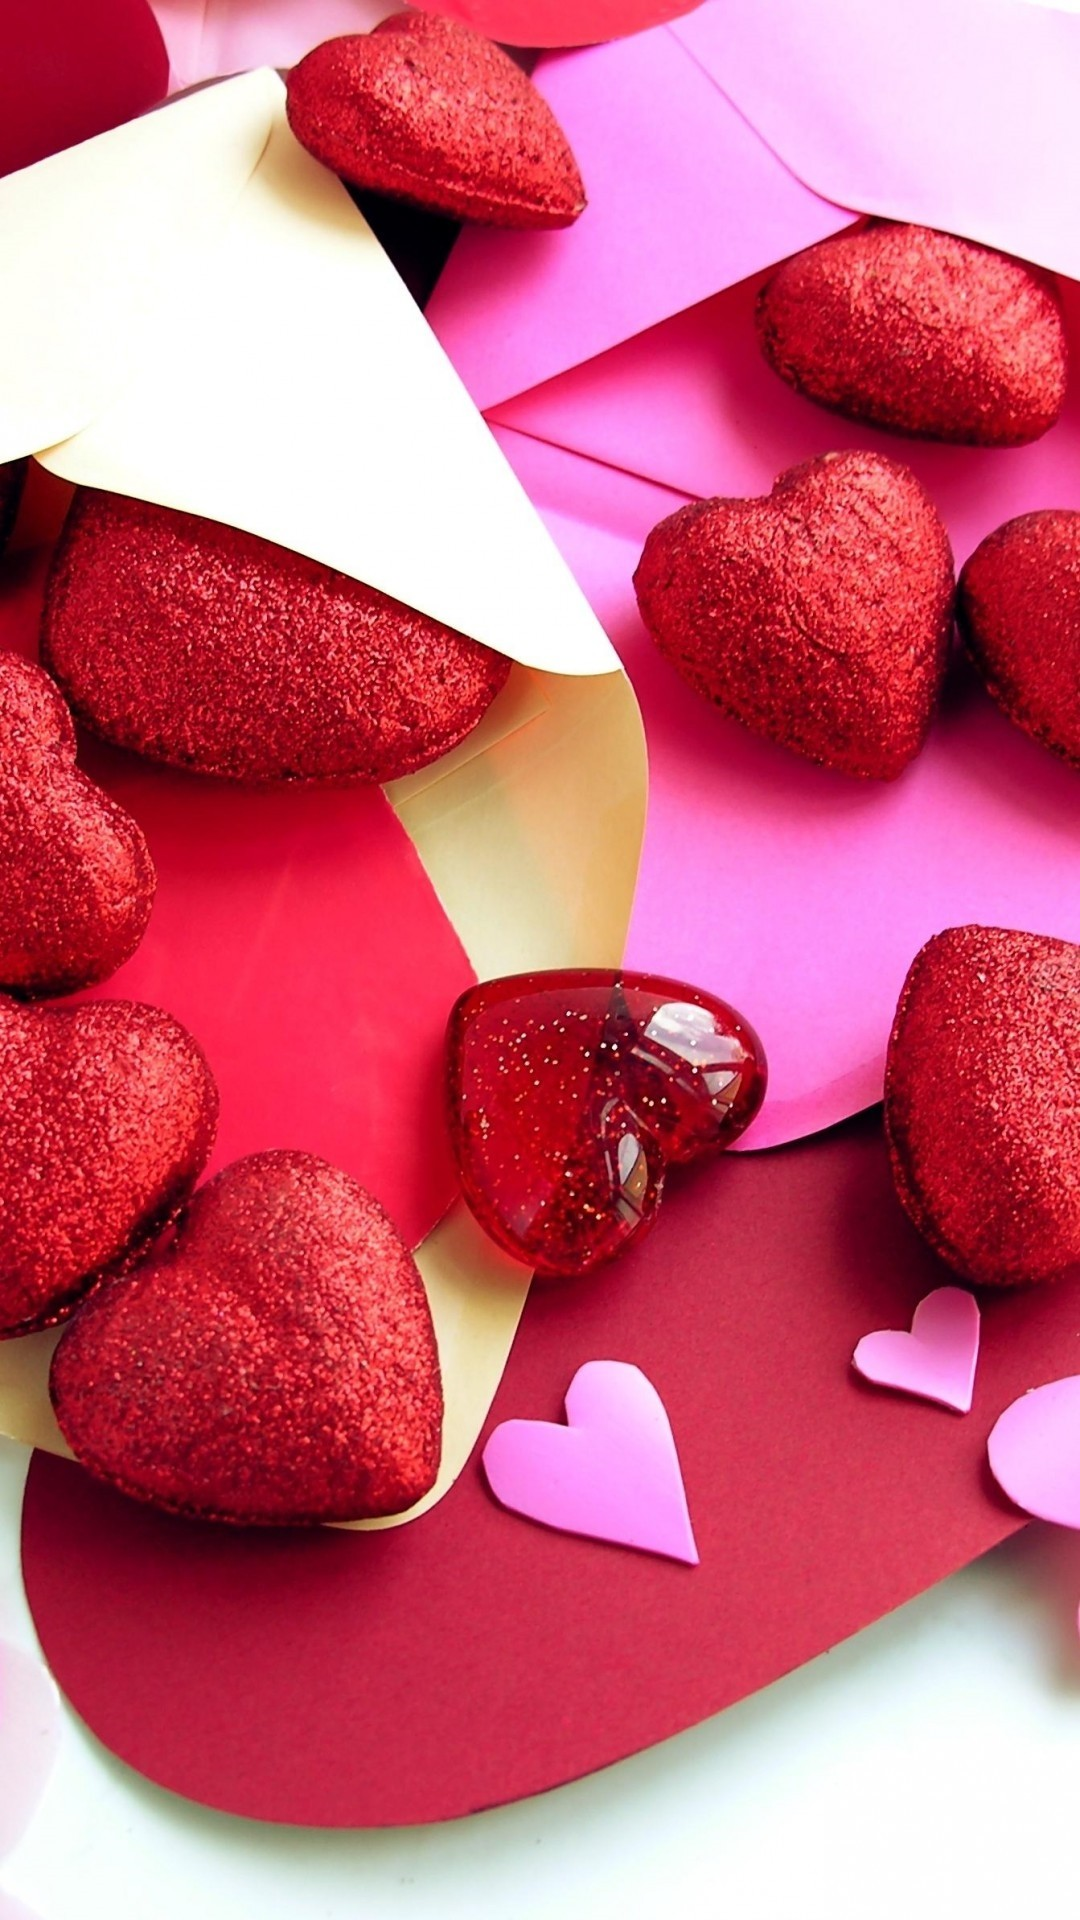 Valentines hd wallpaper for iphone